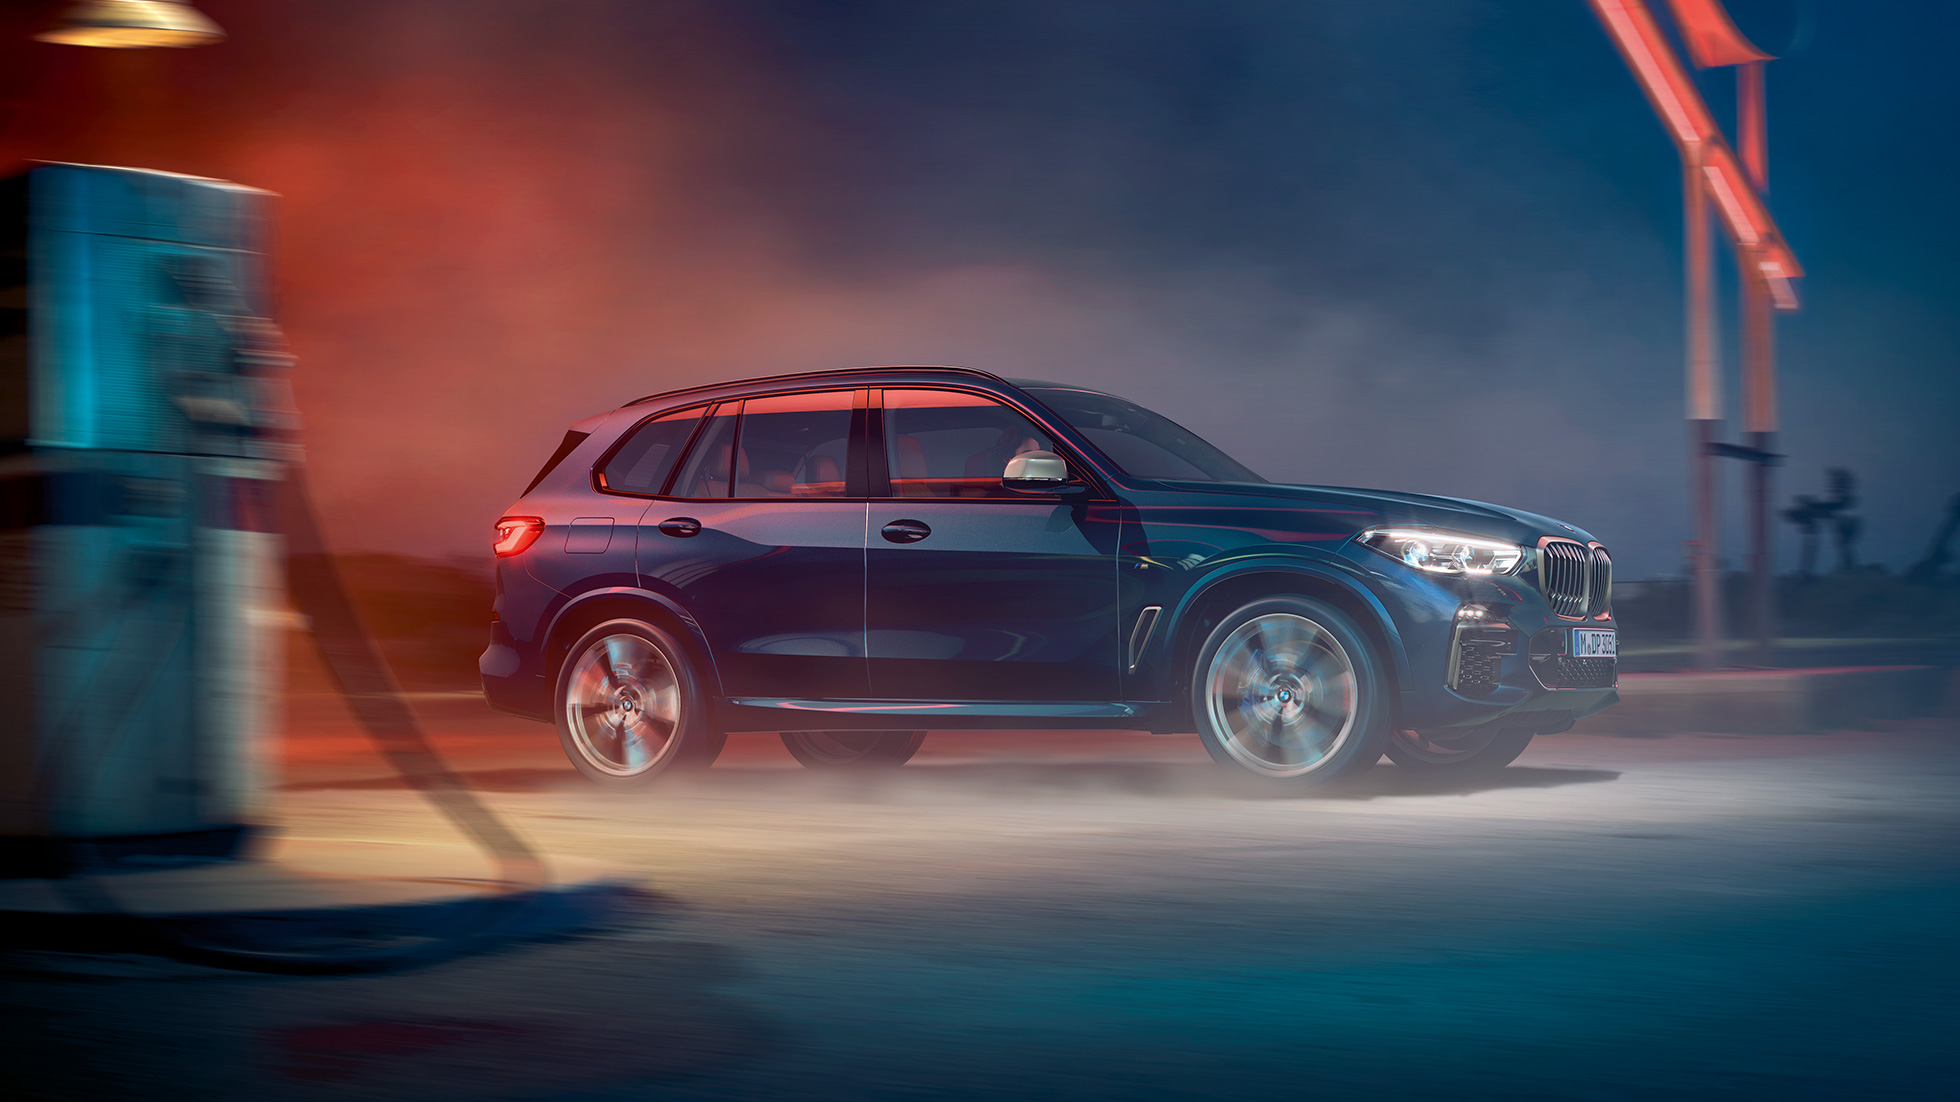 Bmw X5 M Automobiles Discover Highlights Bmw Ly